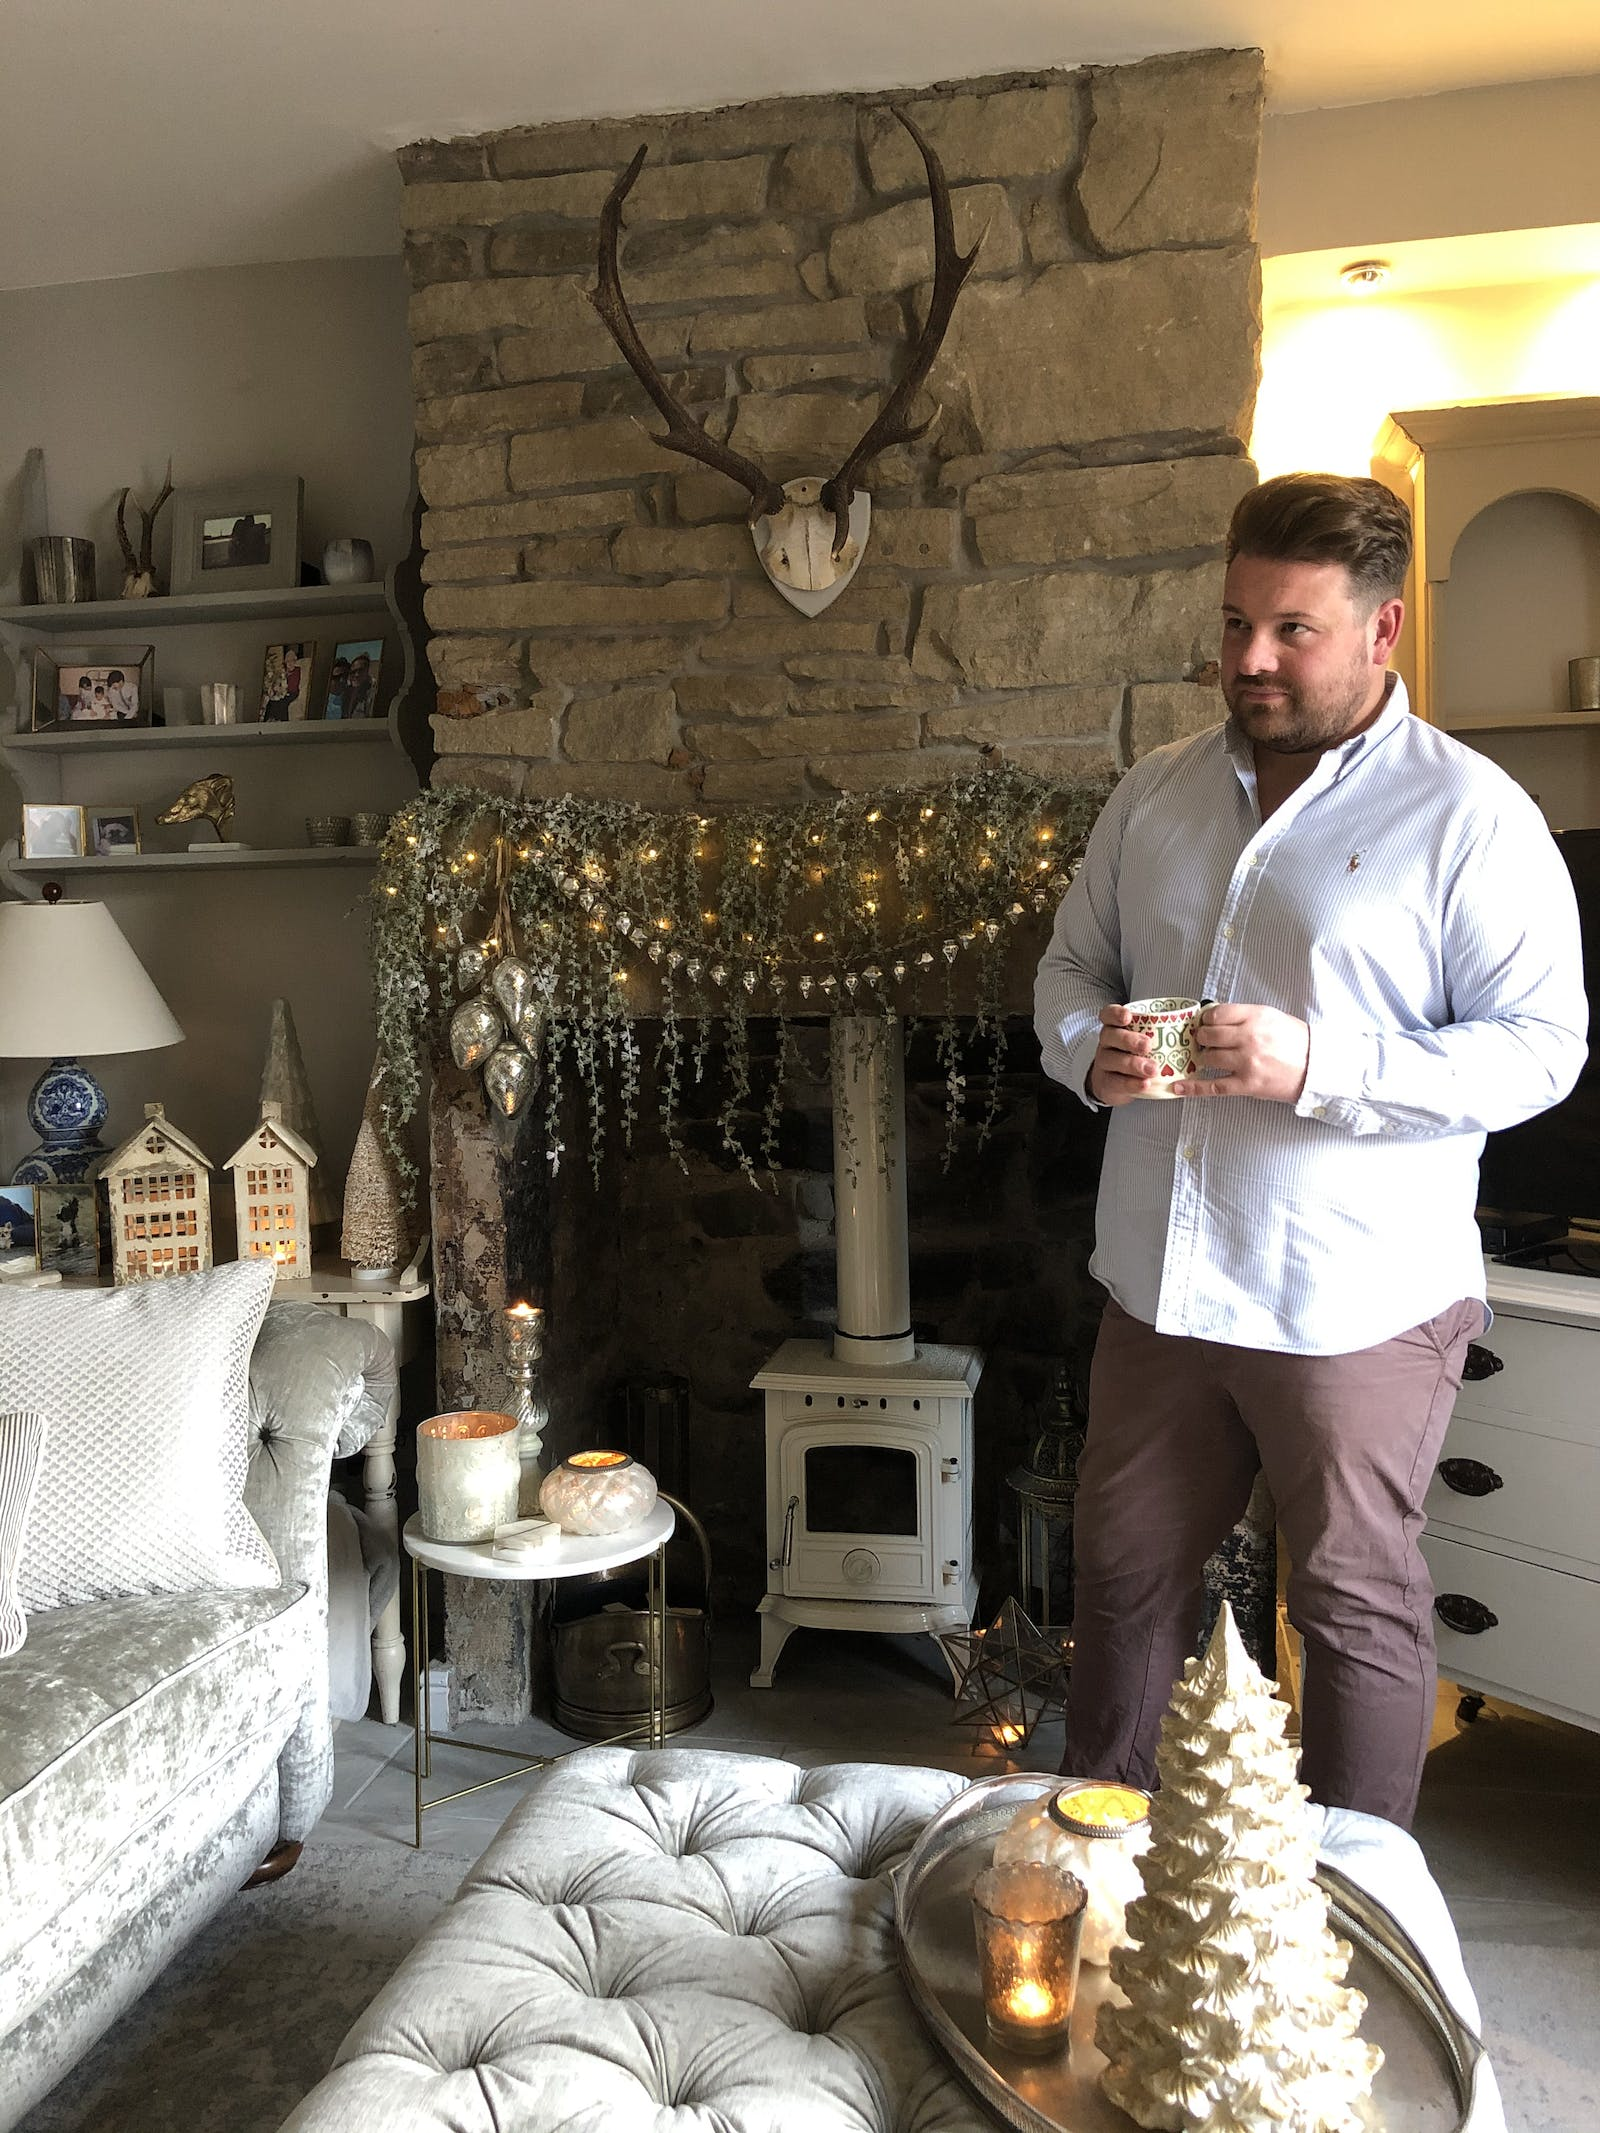 Man standing in front of fireplace decked in Christmas decorations